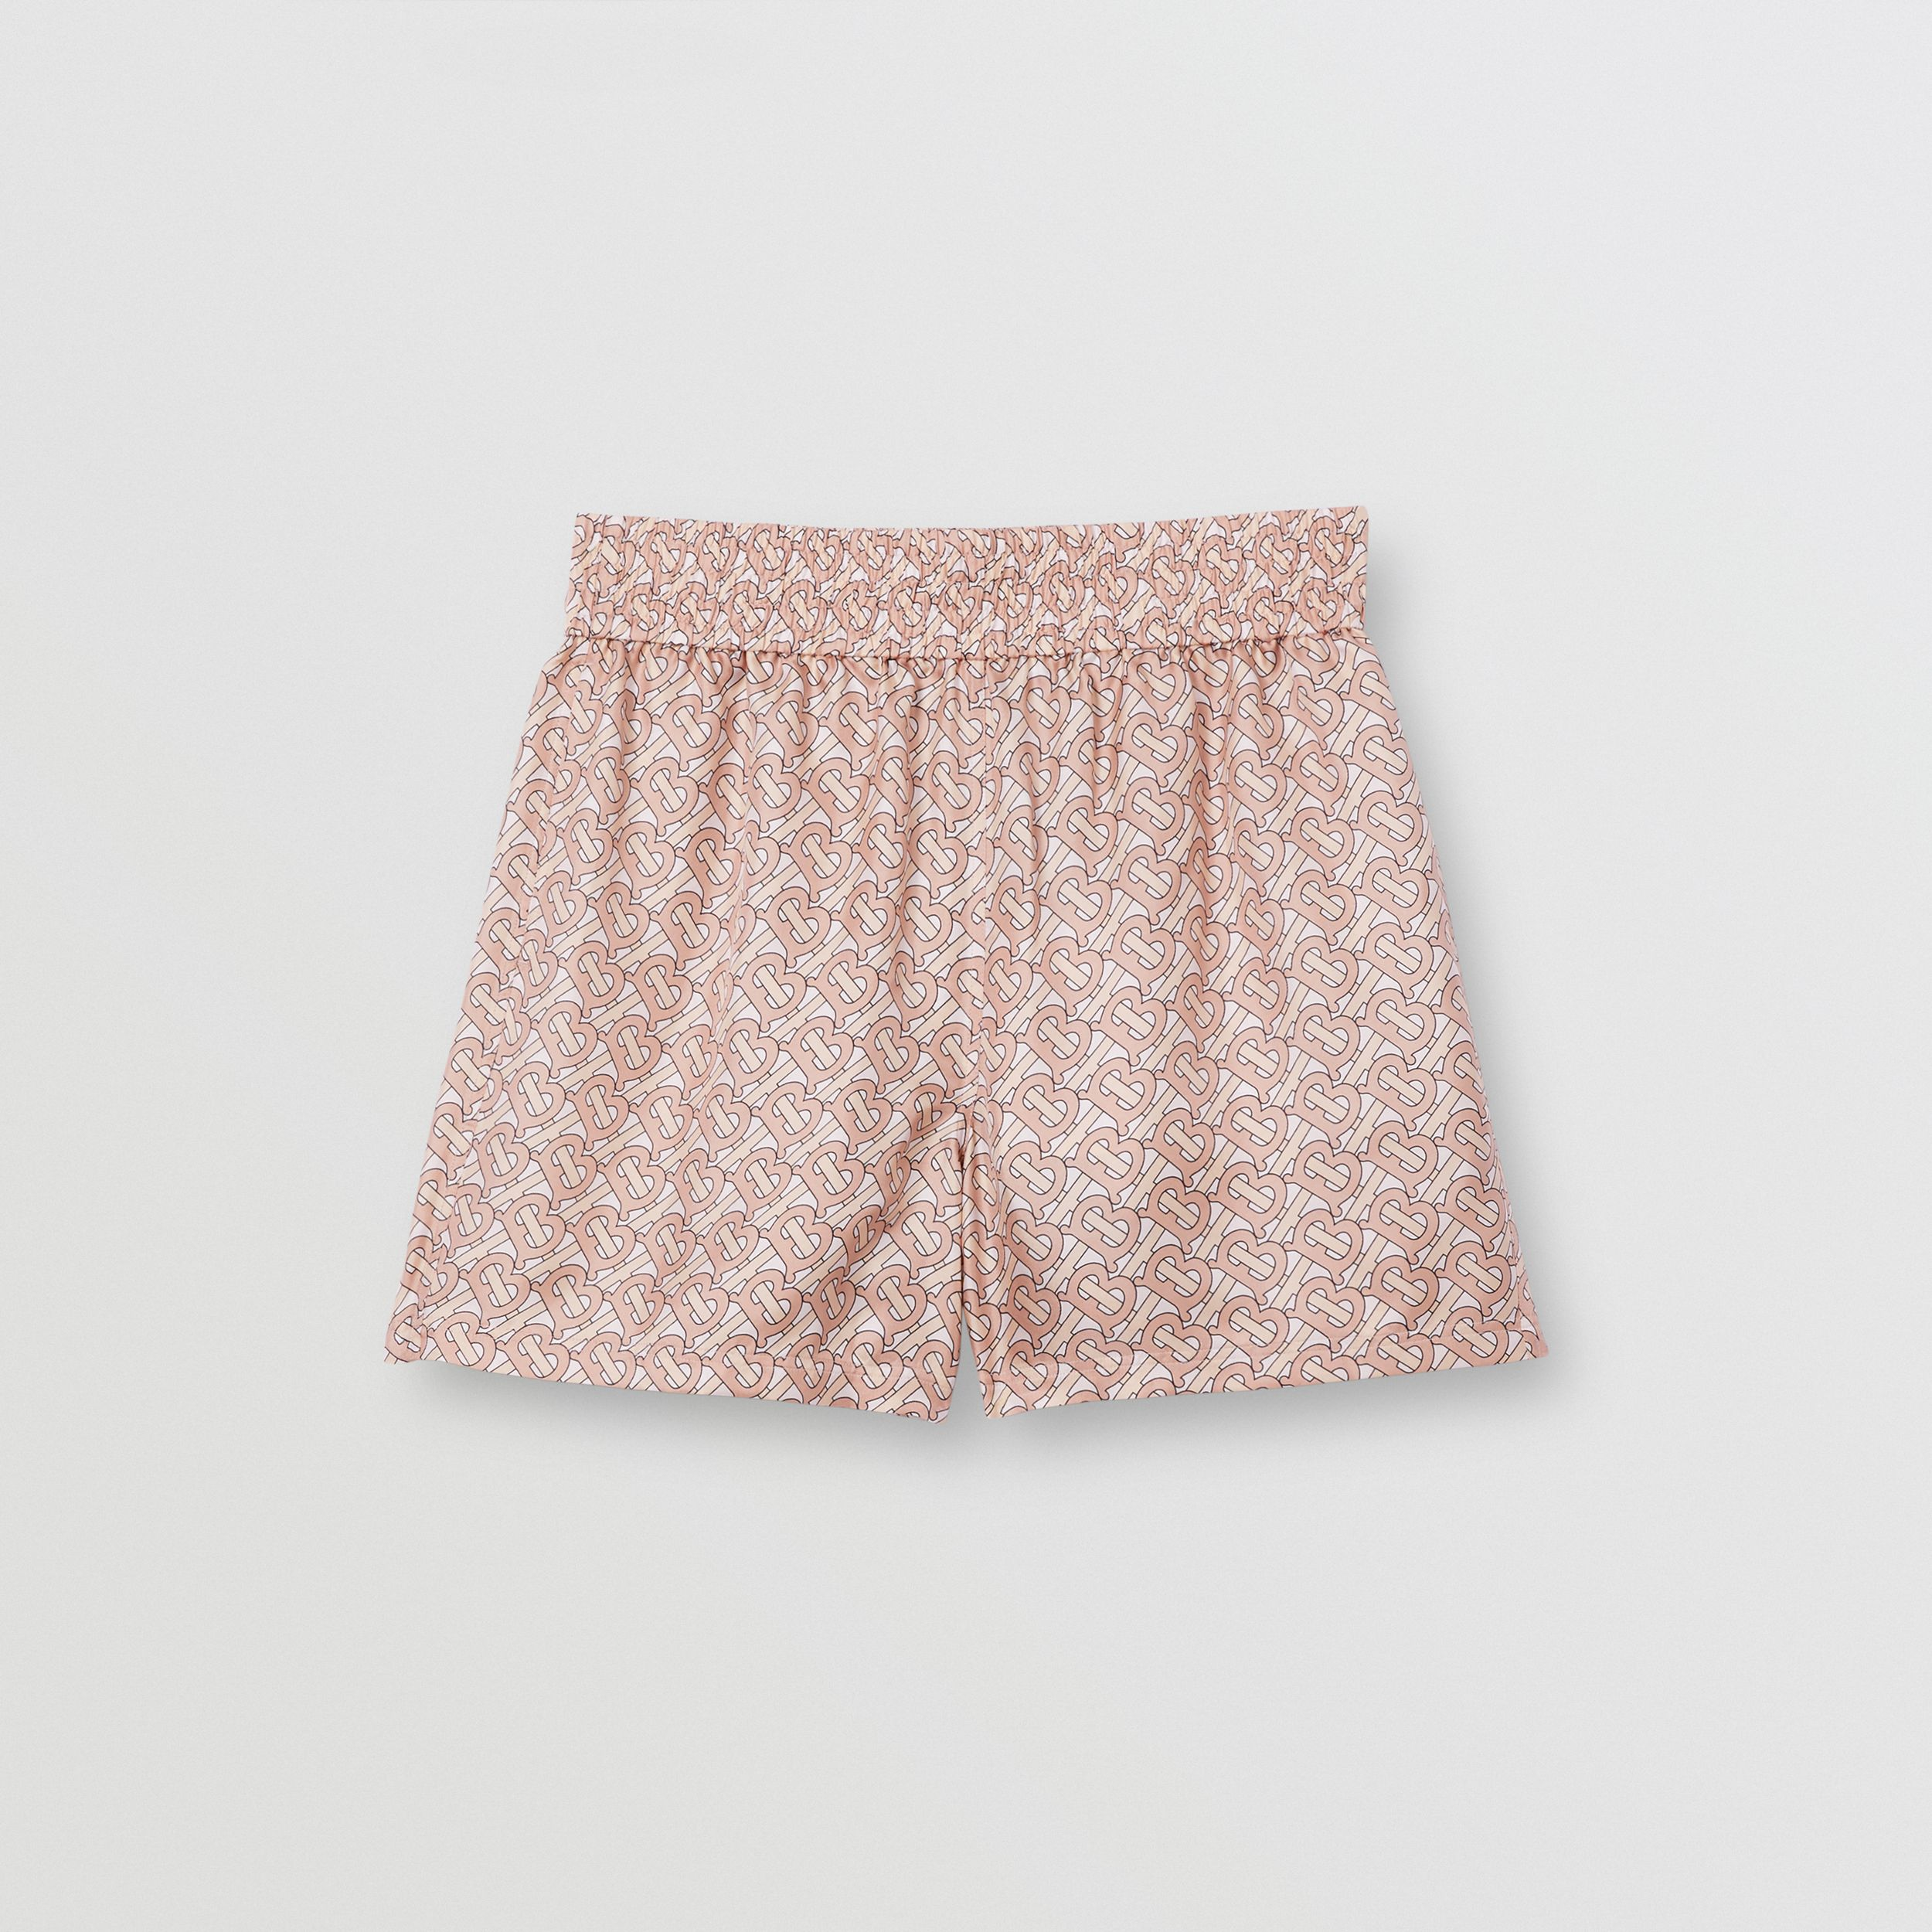 Monogram Print Silk Twill Shorts in Pale Copper Pink - Women | Burberry - 4